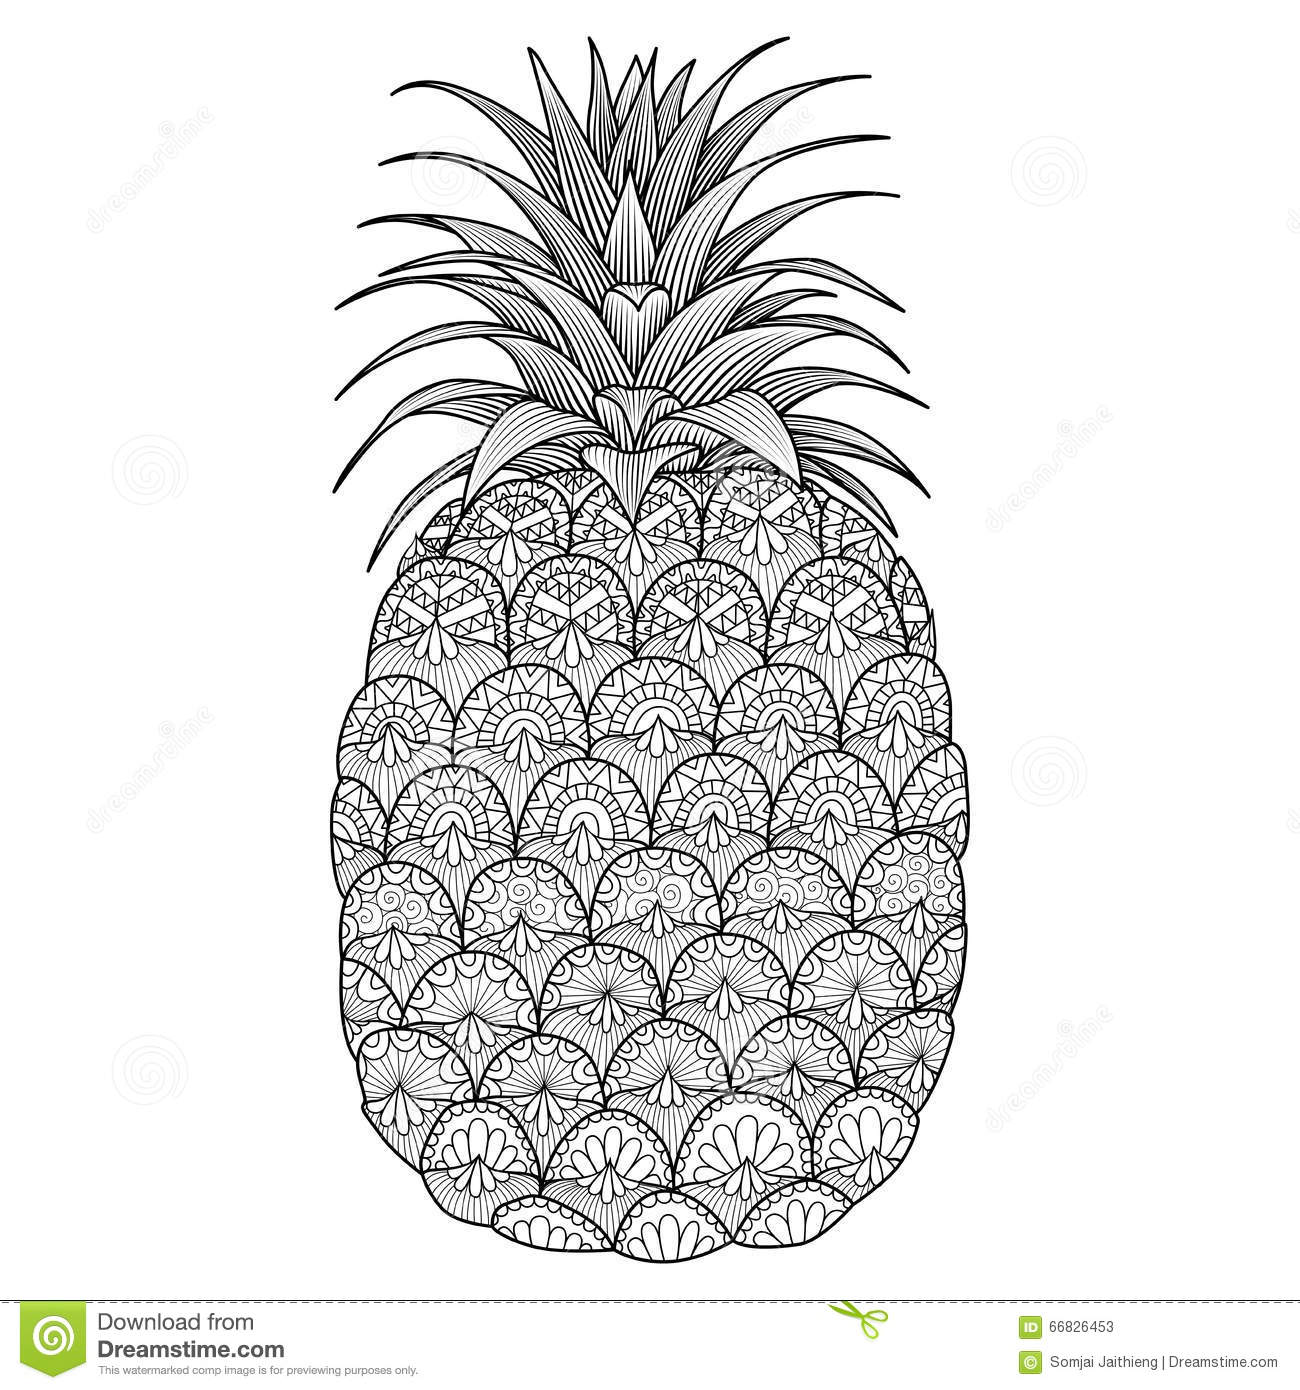 Pineapple line art design stock vector image 66826453, i love you mom and dad coloring pages